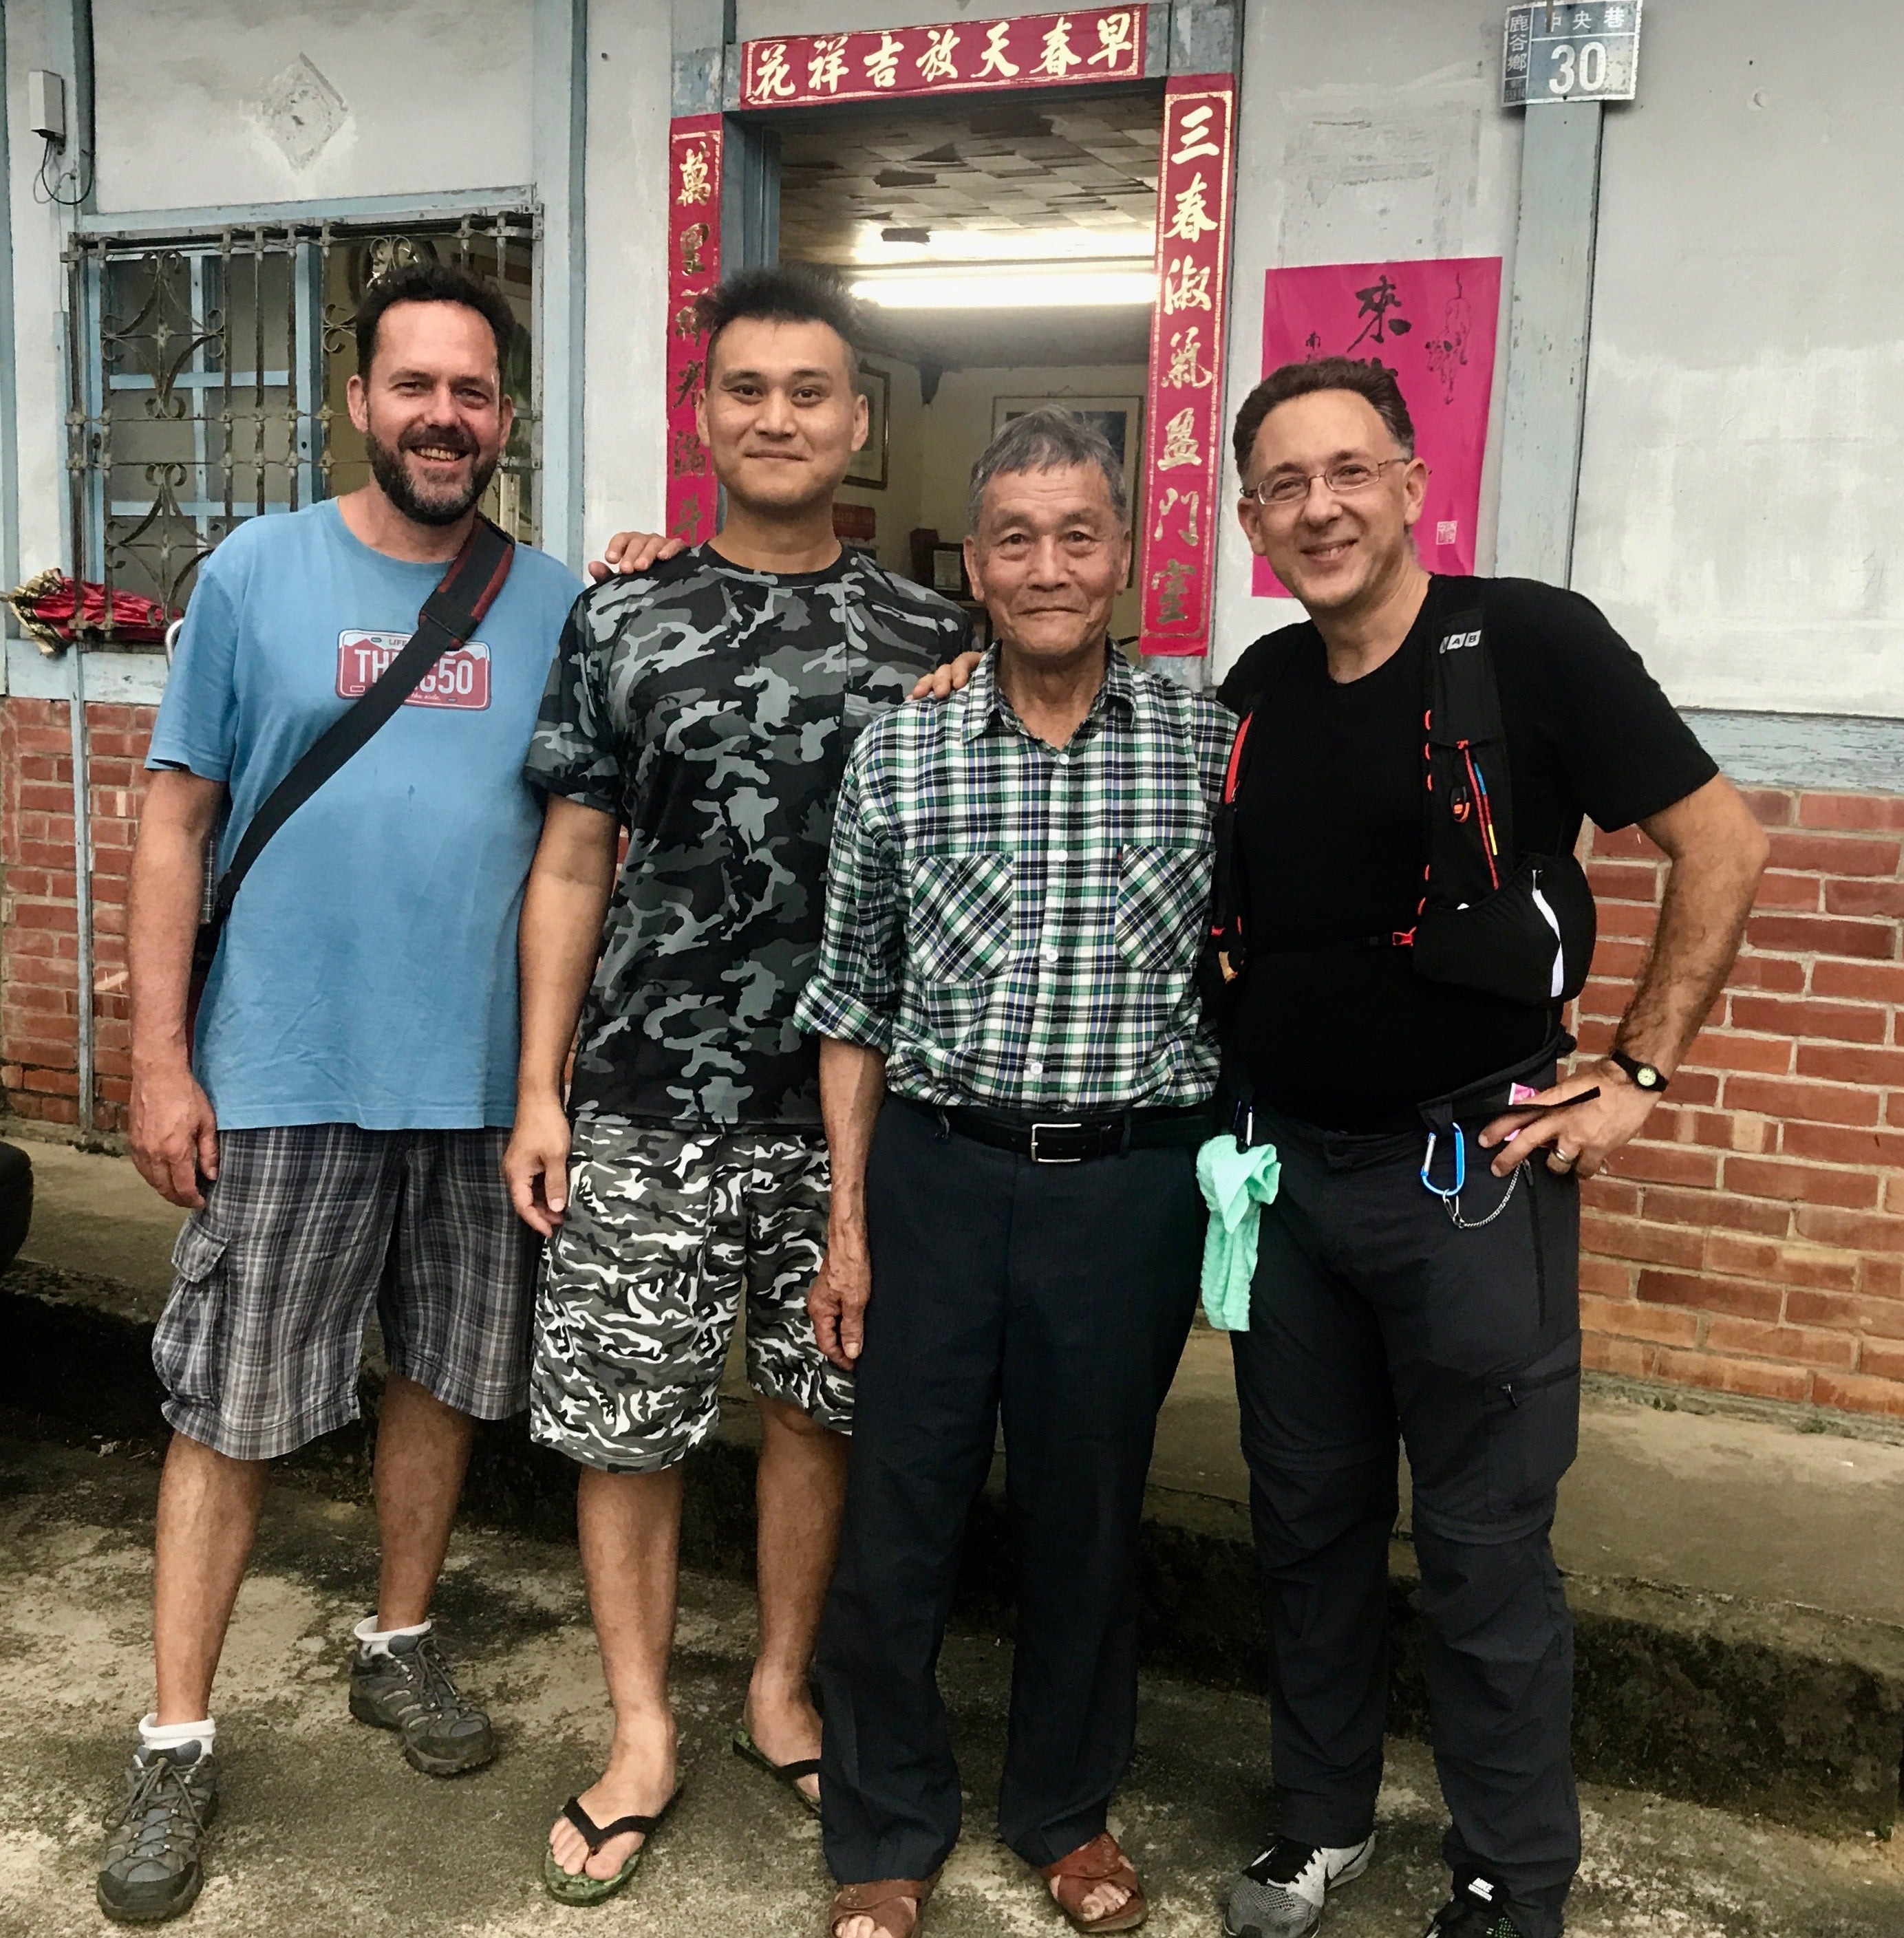 Eco-Cha's sourcing director Andy with Grandpa Liu, his grandson, and Italian guest Fulvio Alba in the home of a world class artisan of Oolong Tea